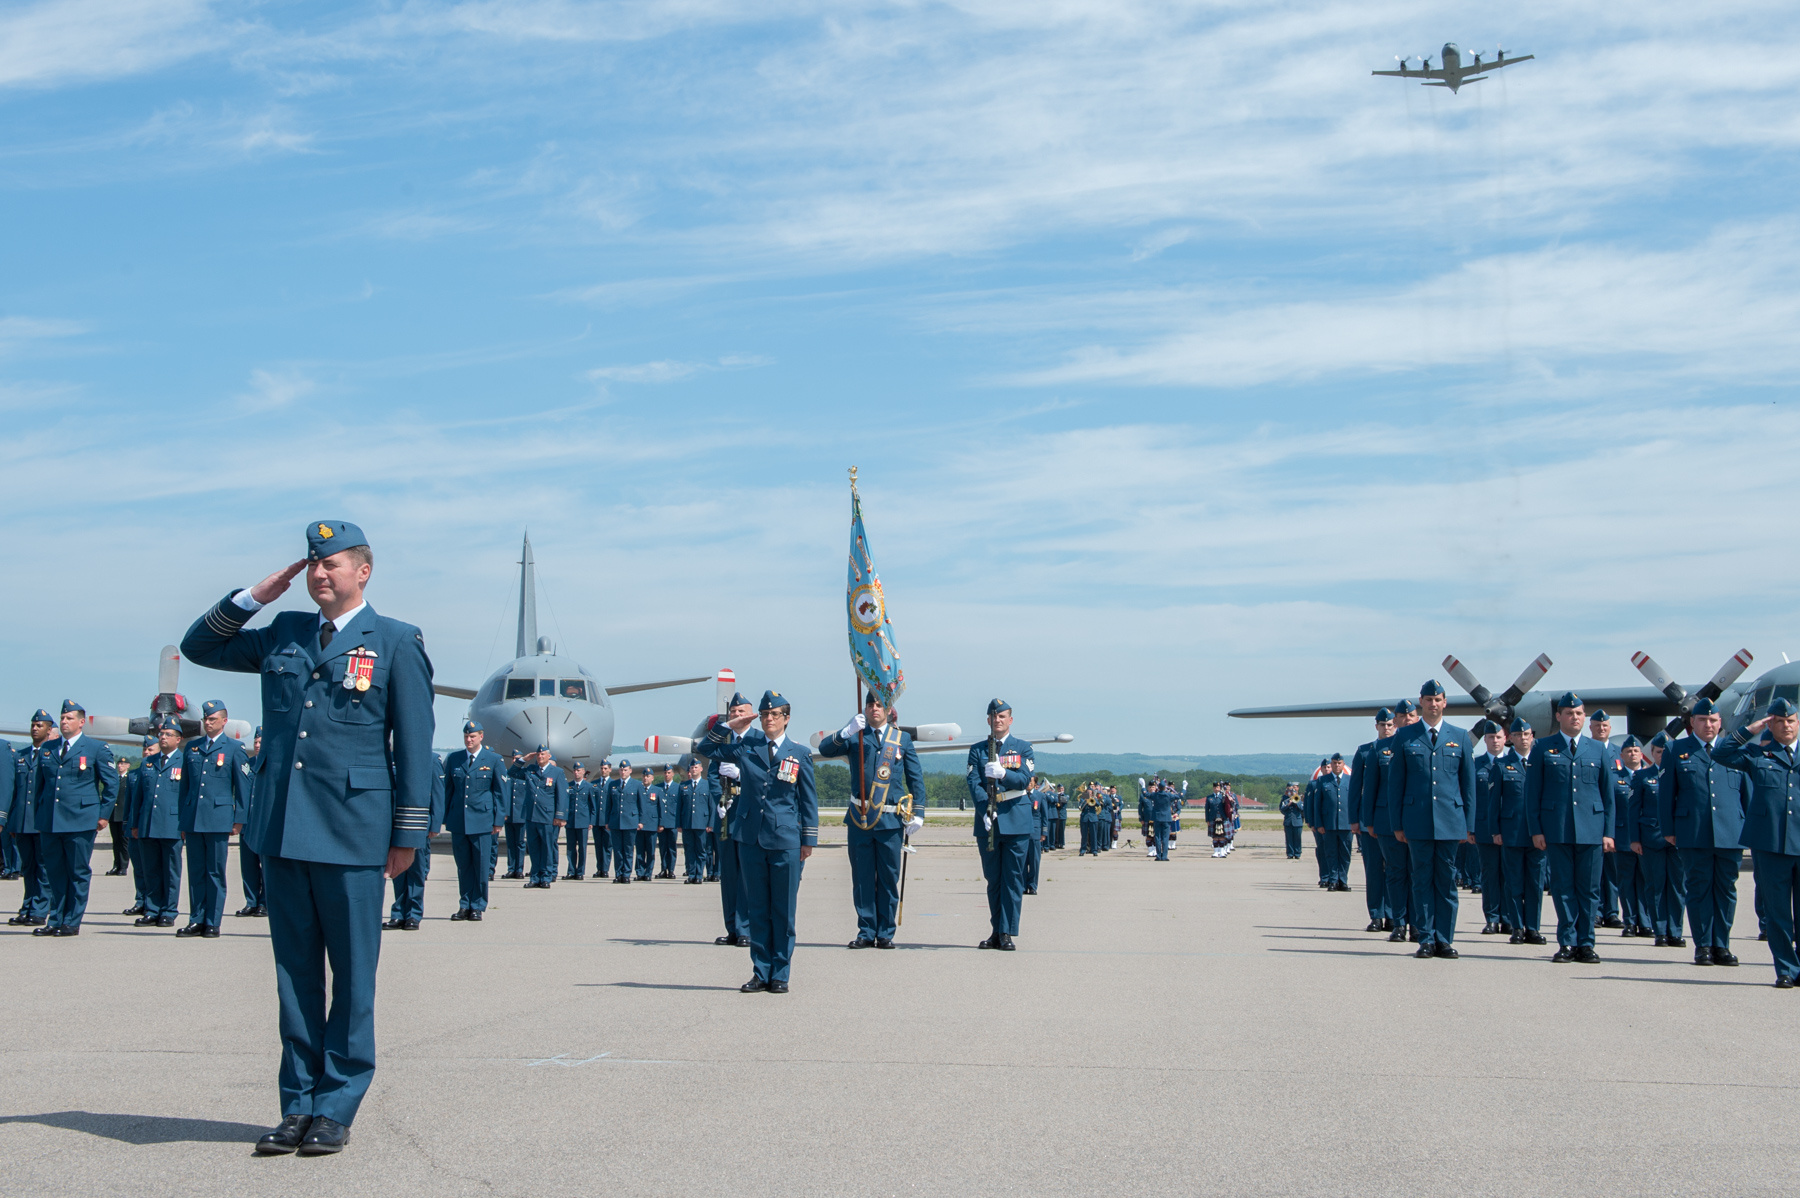 Newly-appointed 14 Wing Greenwood, Nova Scotia, commander Colonel Mike Adamson leads the July 20, 2017, change of command parade through the advance in review order, as one of the wing's signature CP-140 Auroras flies overhead. PHOTO: Corporal Dan Salisbury, GD04-2017-0453-034